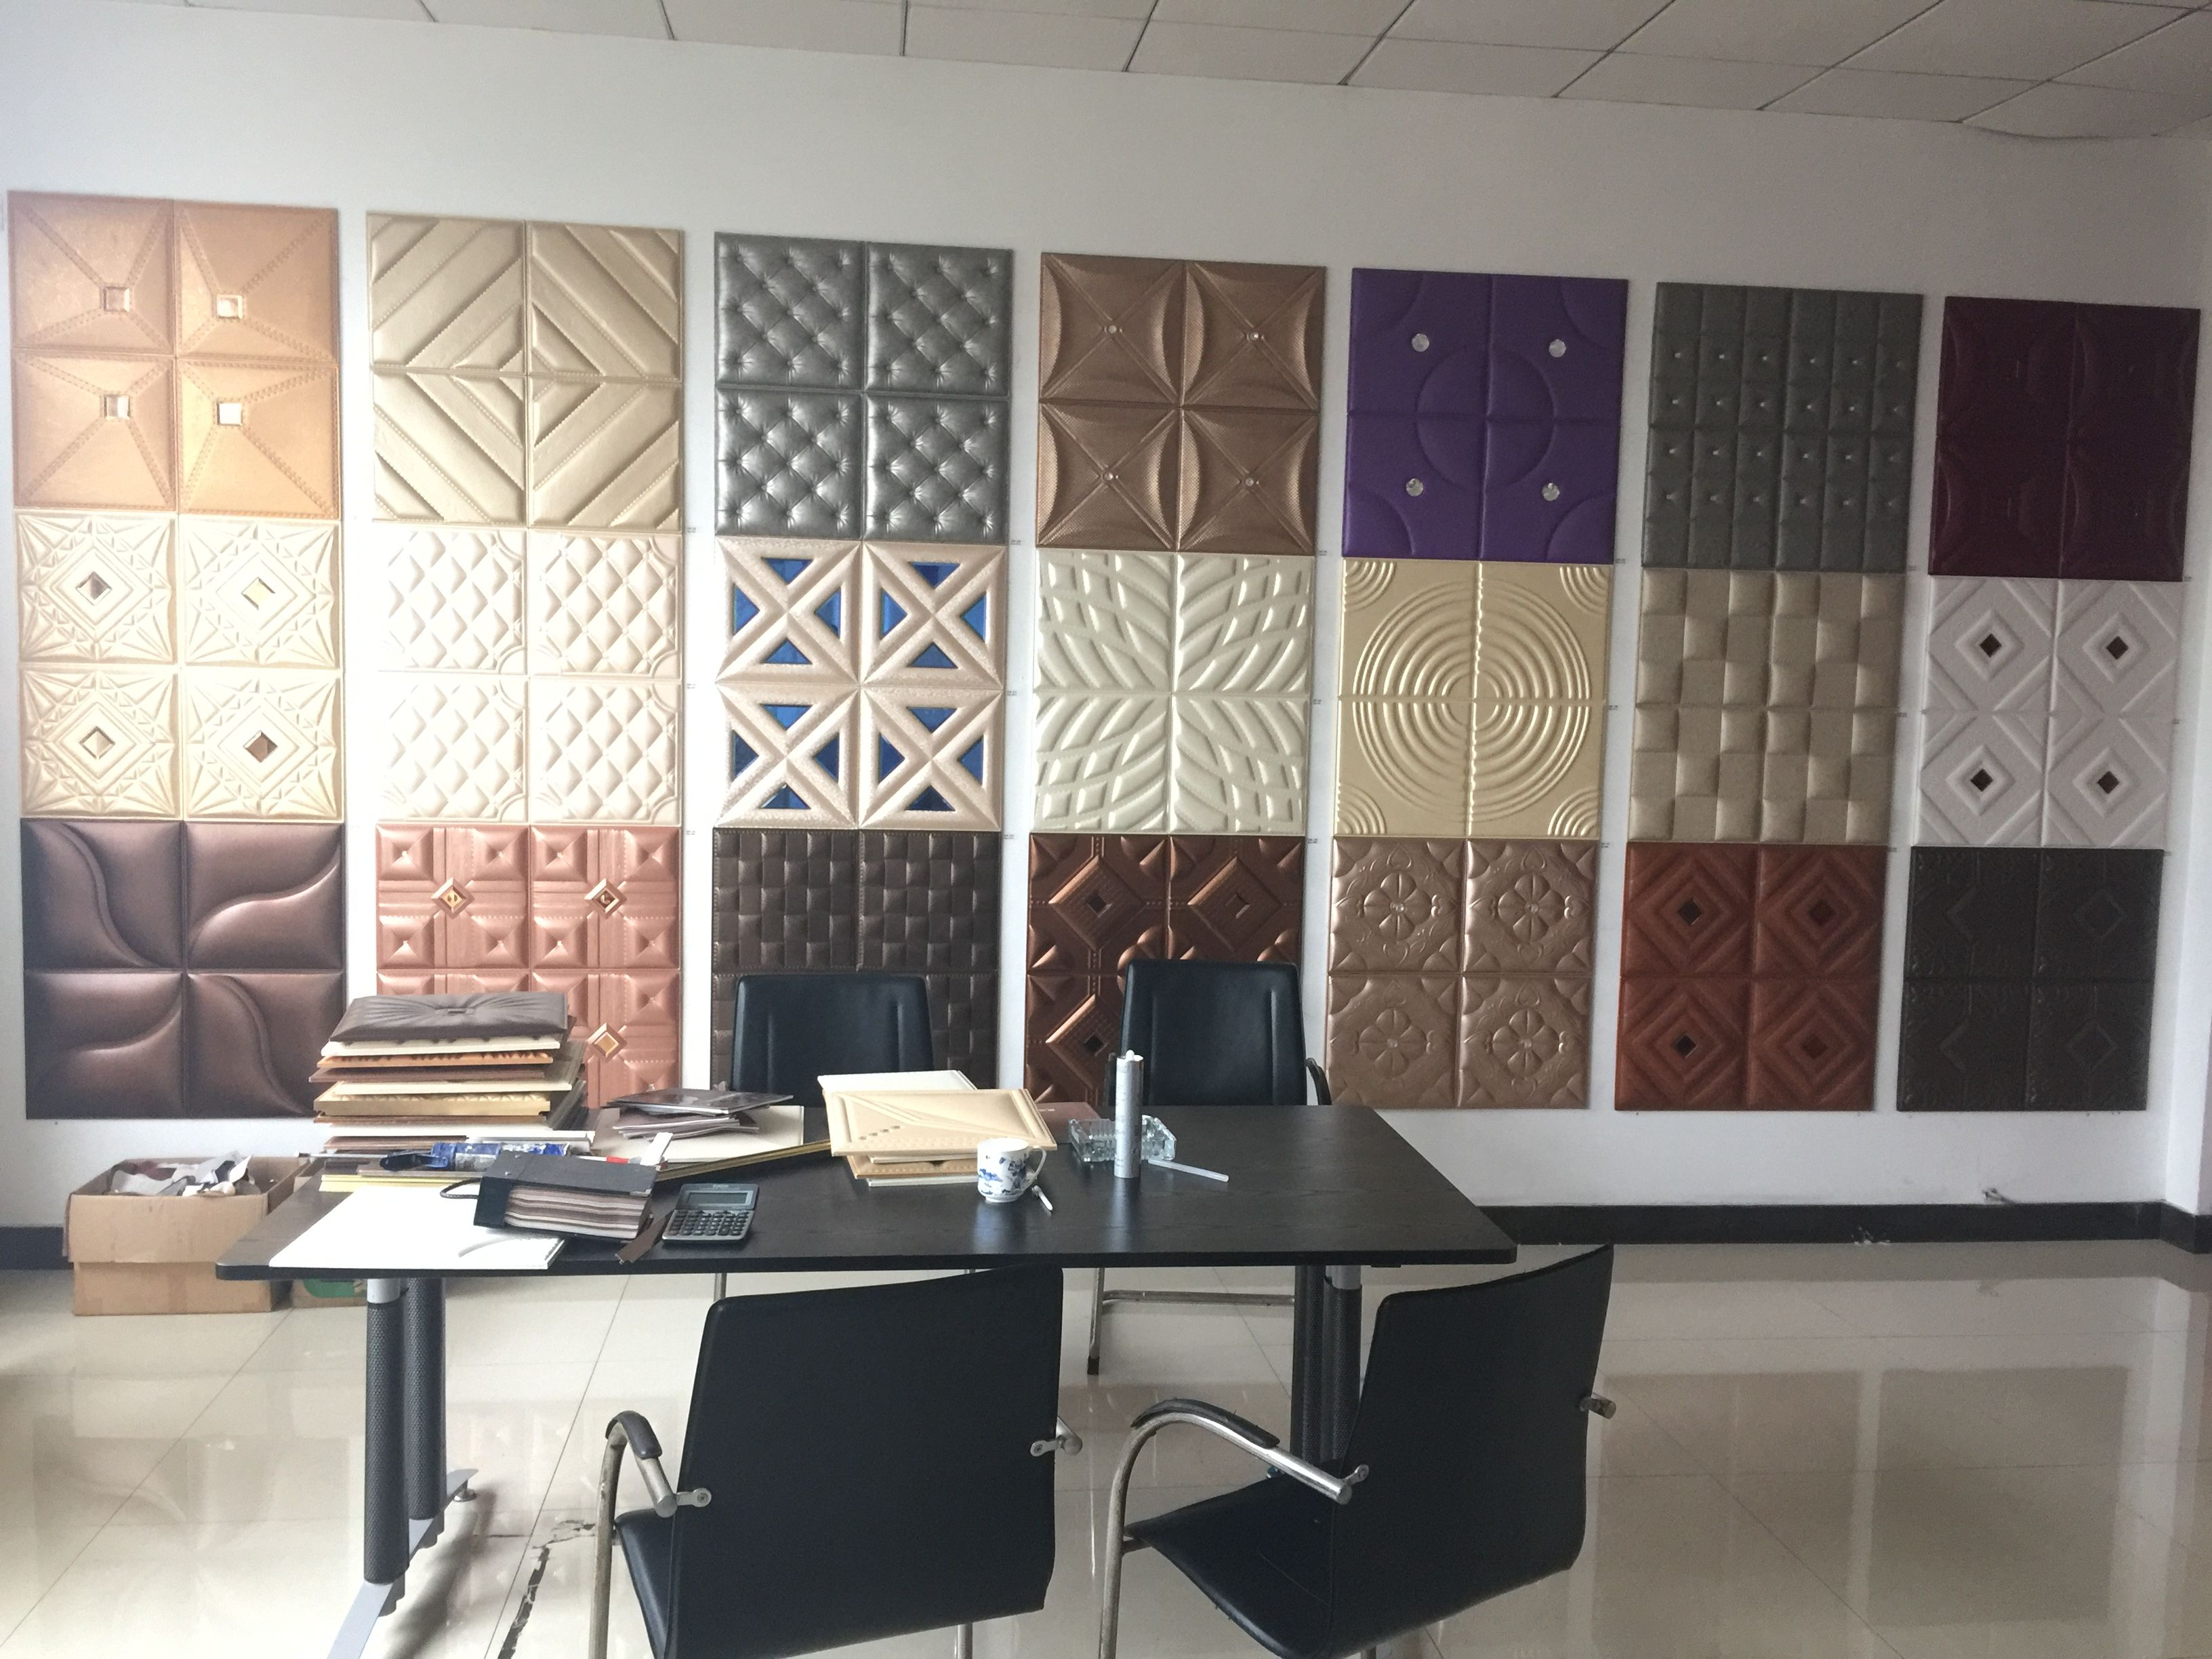 Pu Leather Wall Panel Showroom Located In Haining Xianke New Material Techonology Co Ltd Wall Cladding Interior Plastic Wall Panels Leather Wall